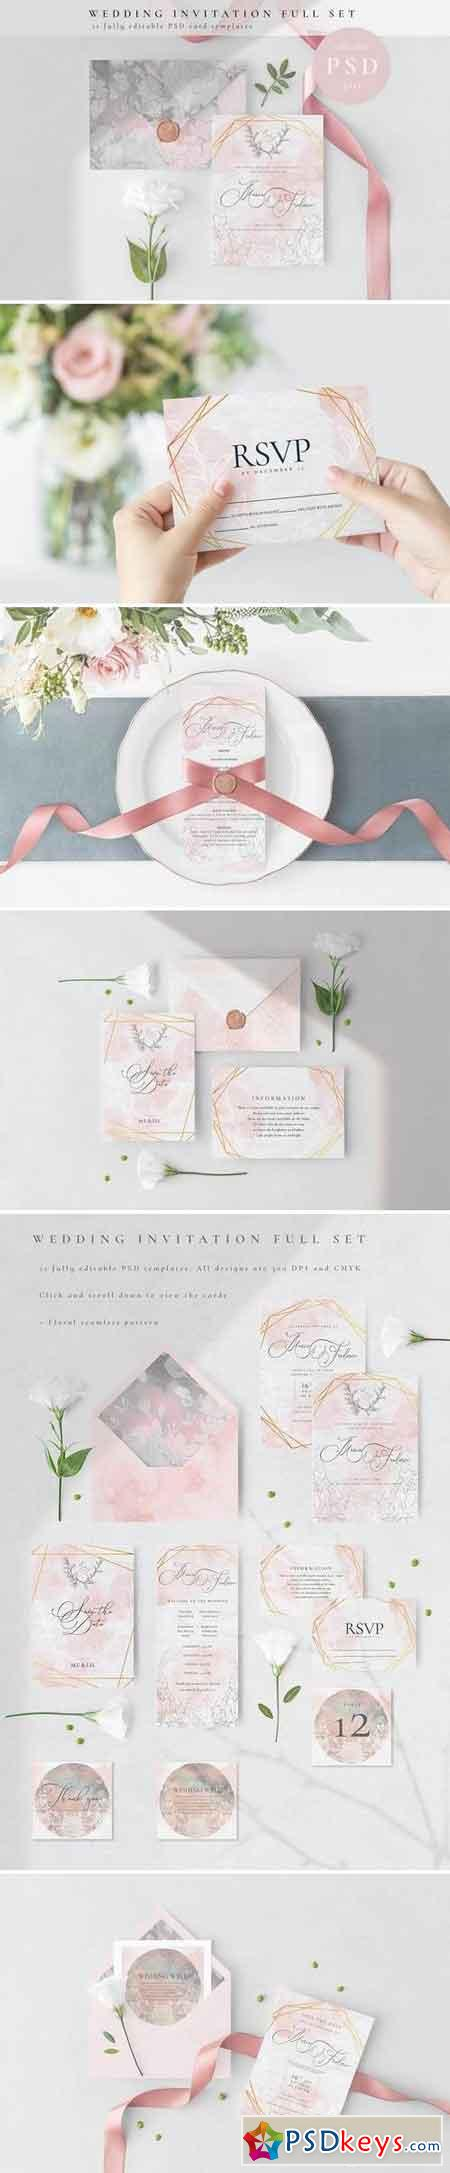 Wedding Invitation Full Set